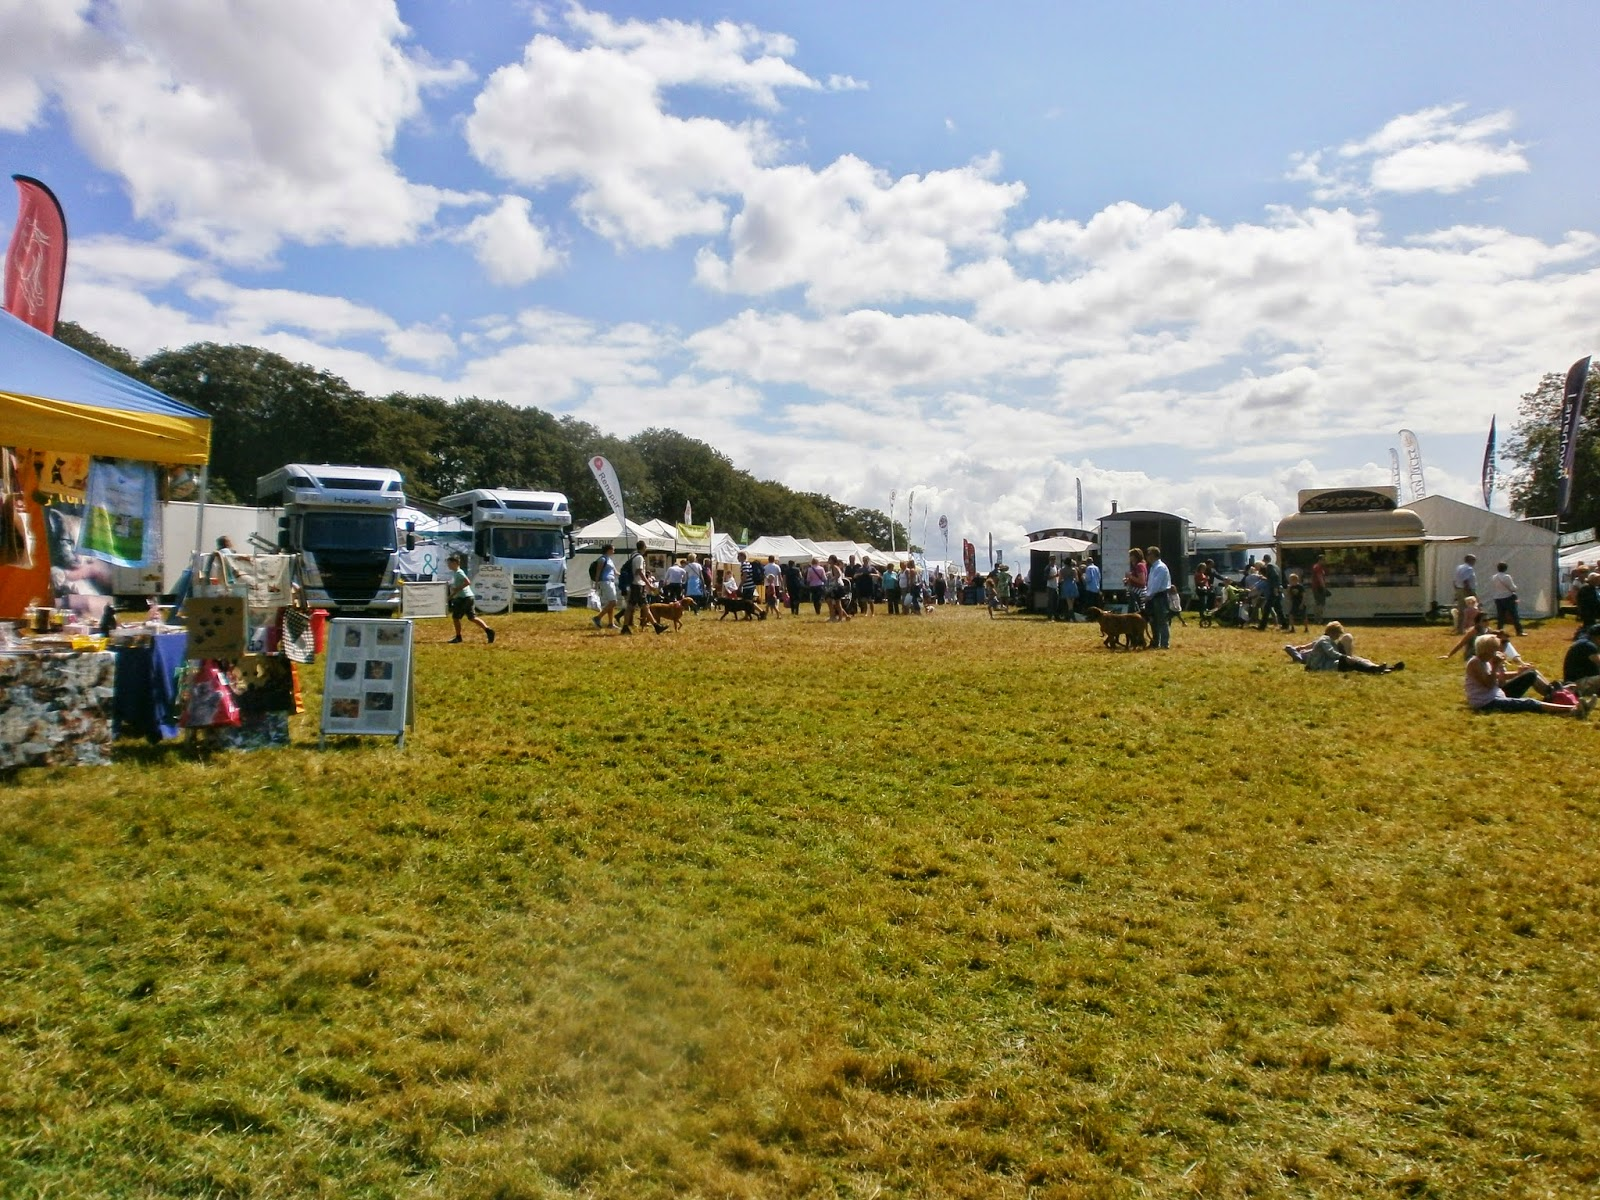 shopping village at Gatcombe Park